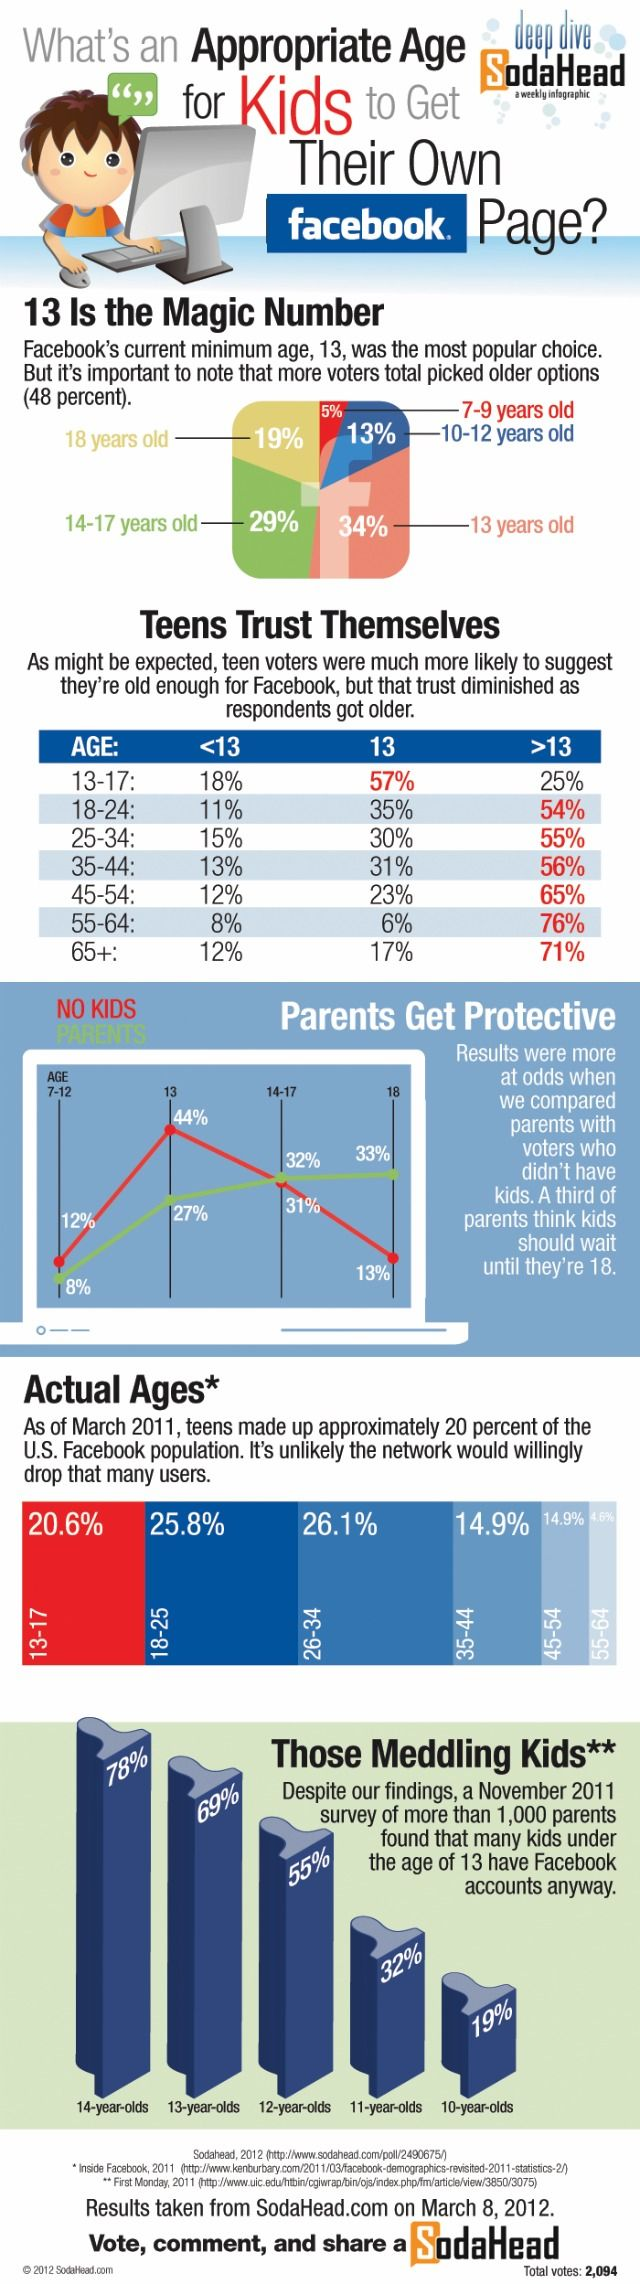 Consumers Believe Facebook Users Should be Older than Age 13 Requirement